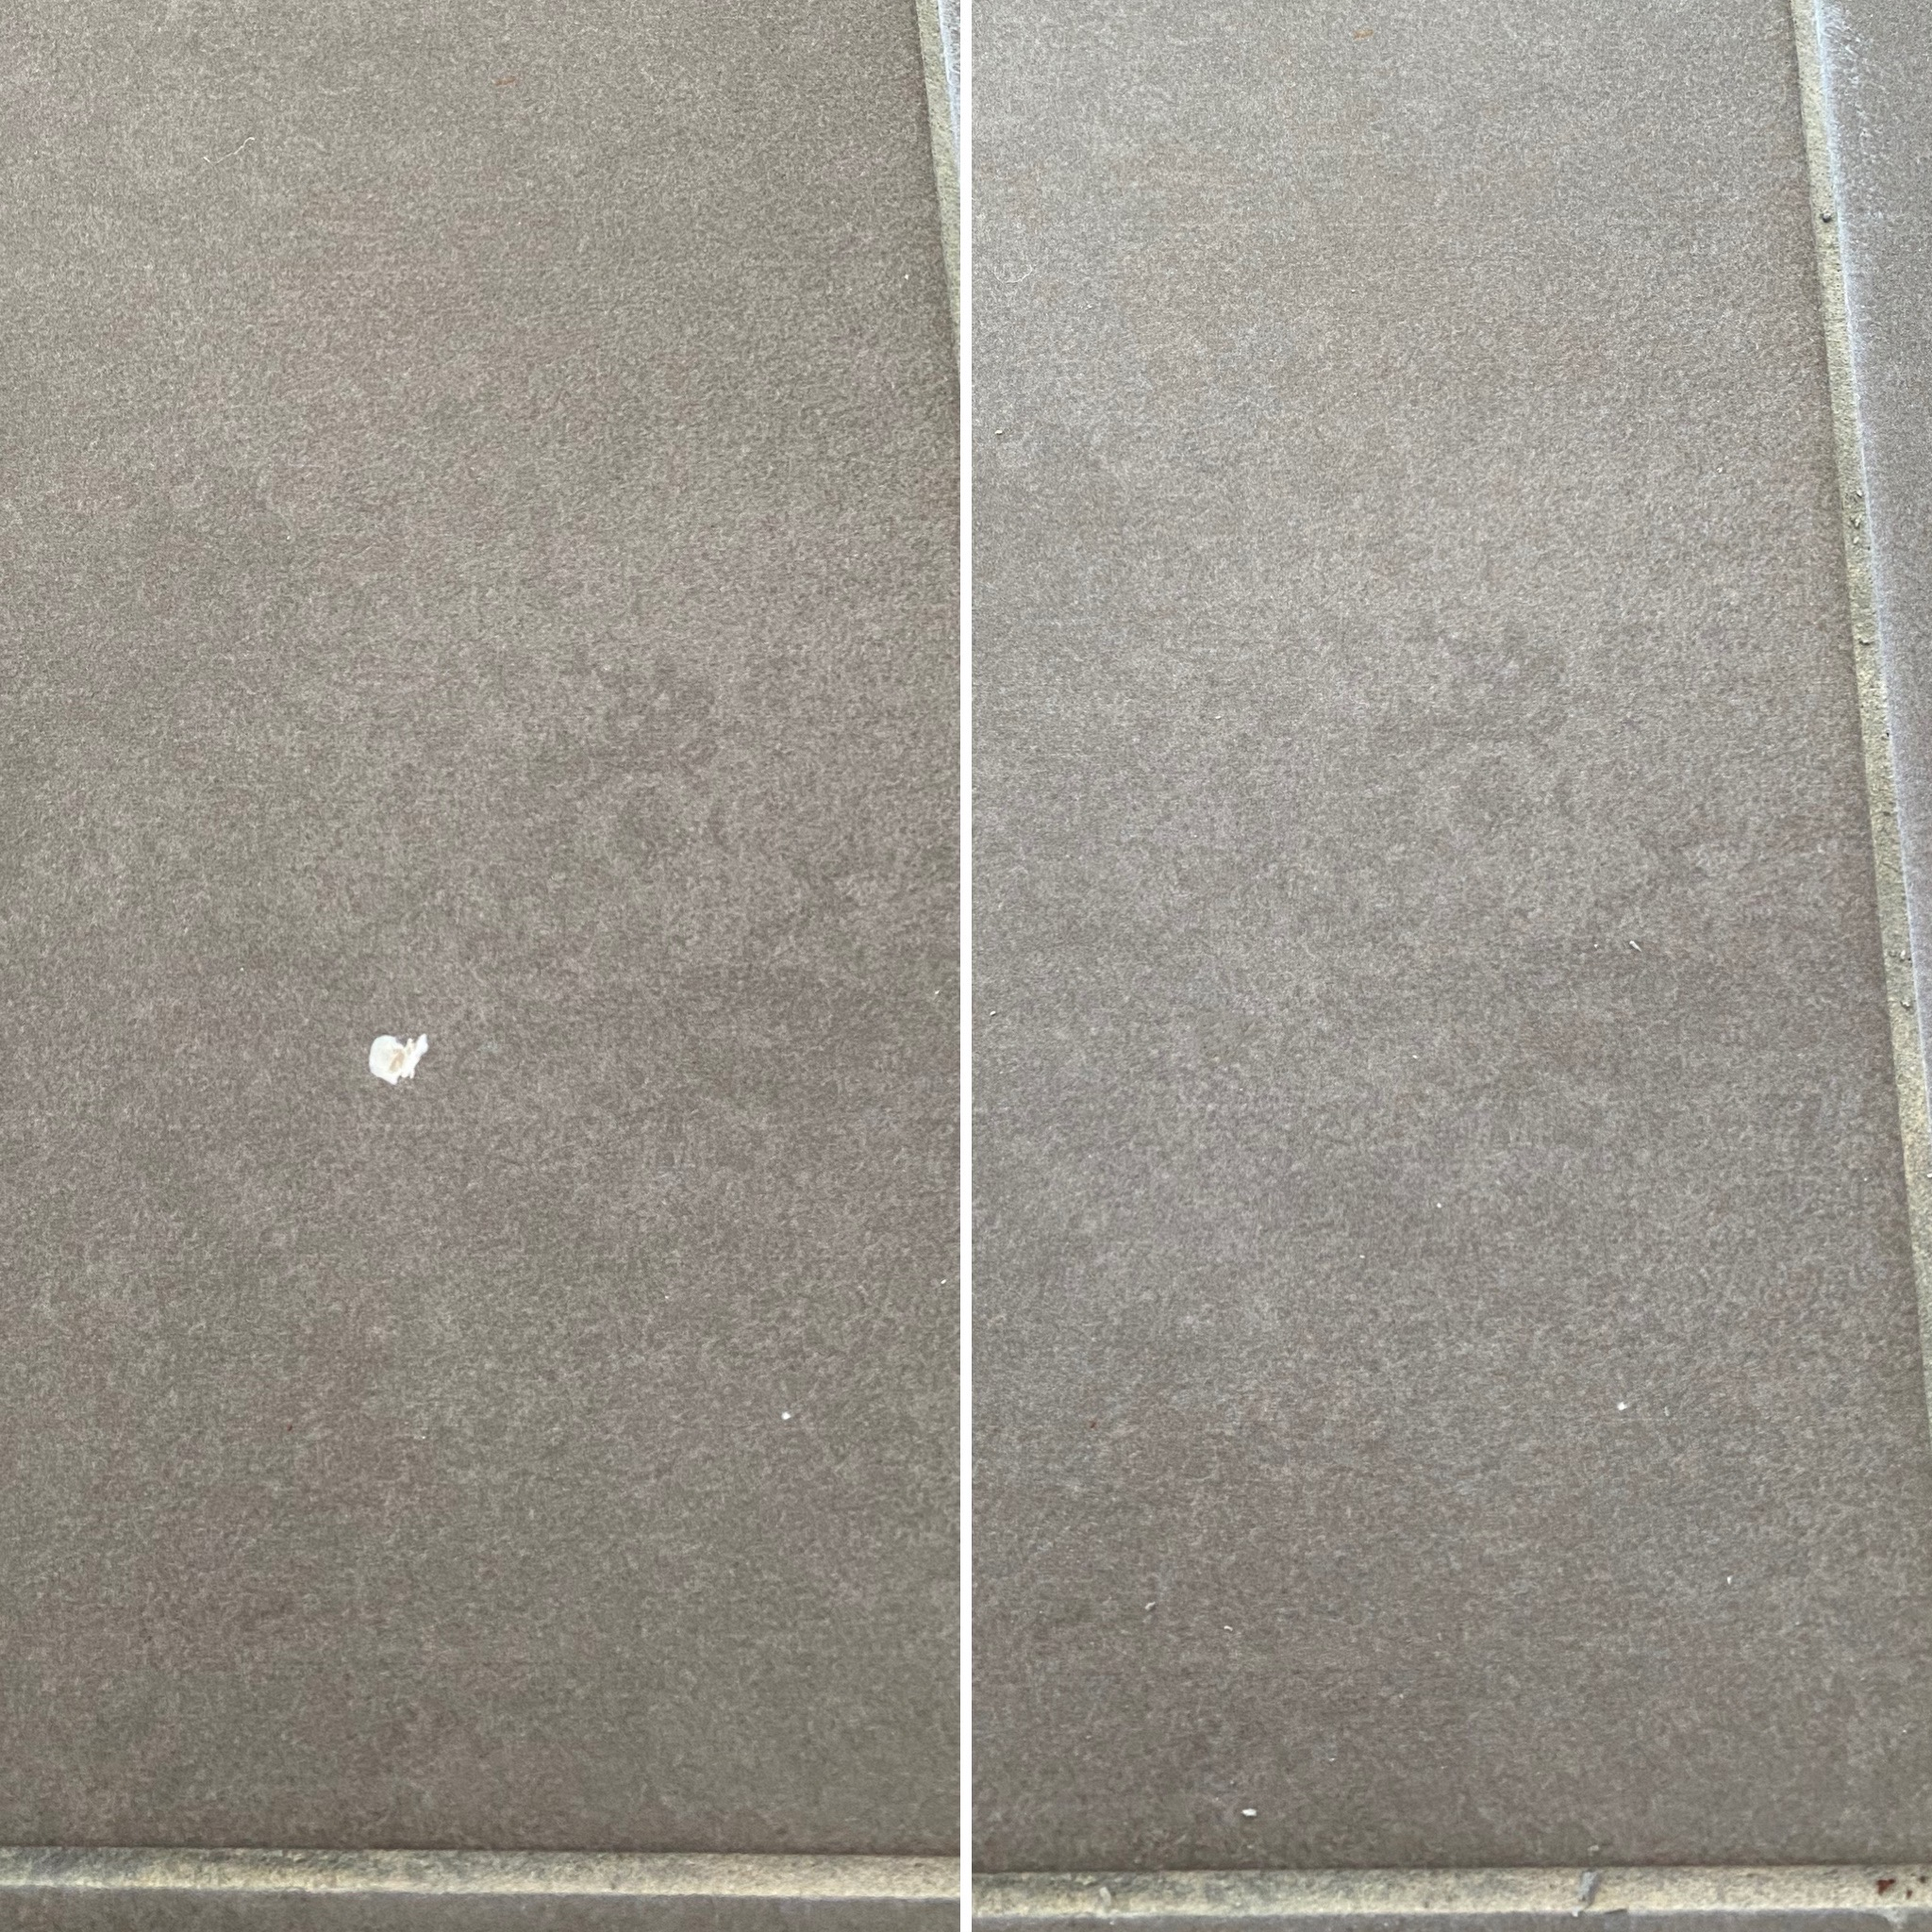 chipped floor tile repair surface wizard